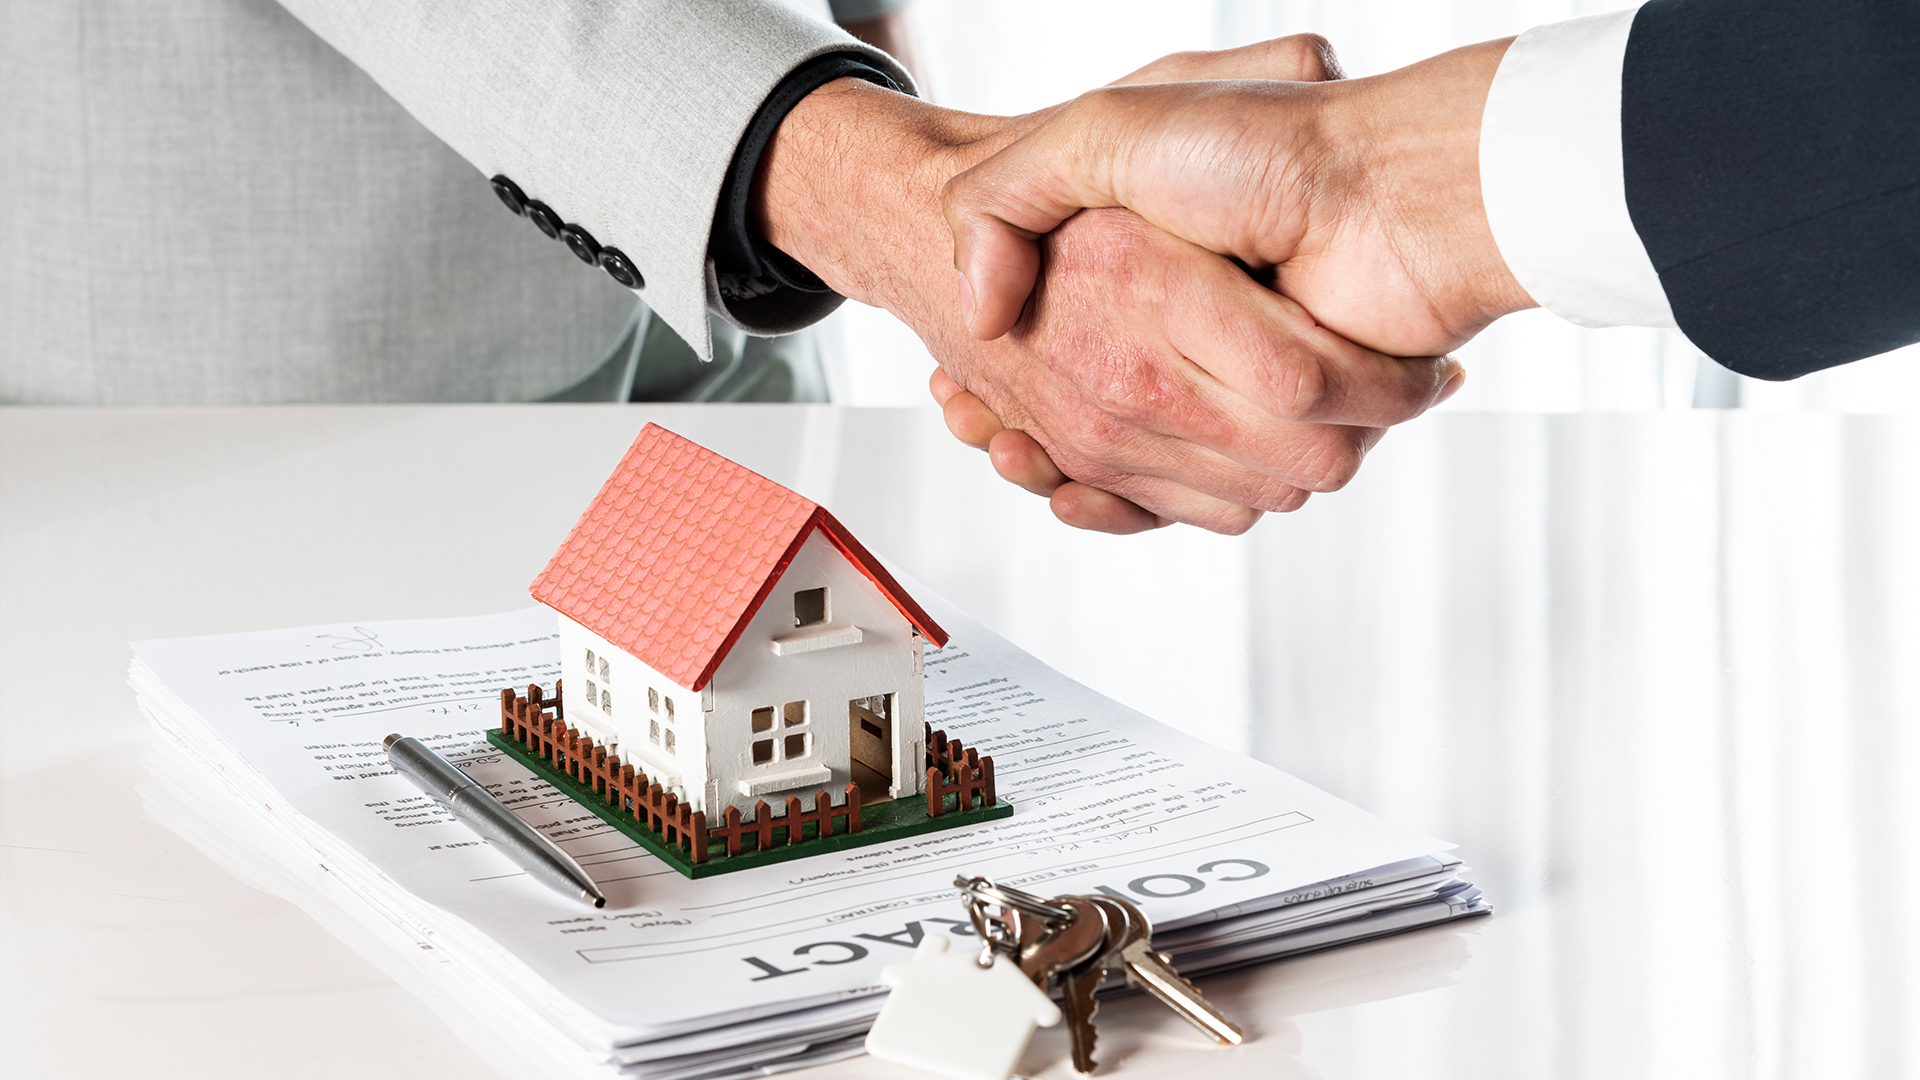 Details On Insurance Reinstatement Cost Of The Property